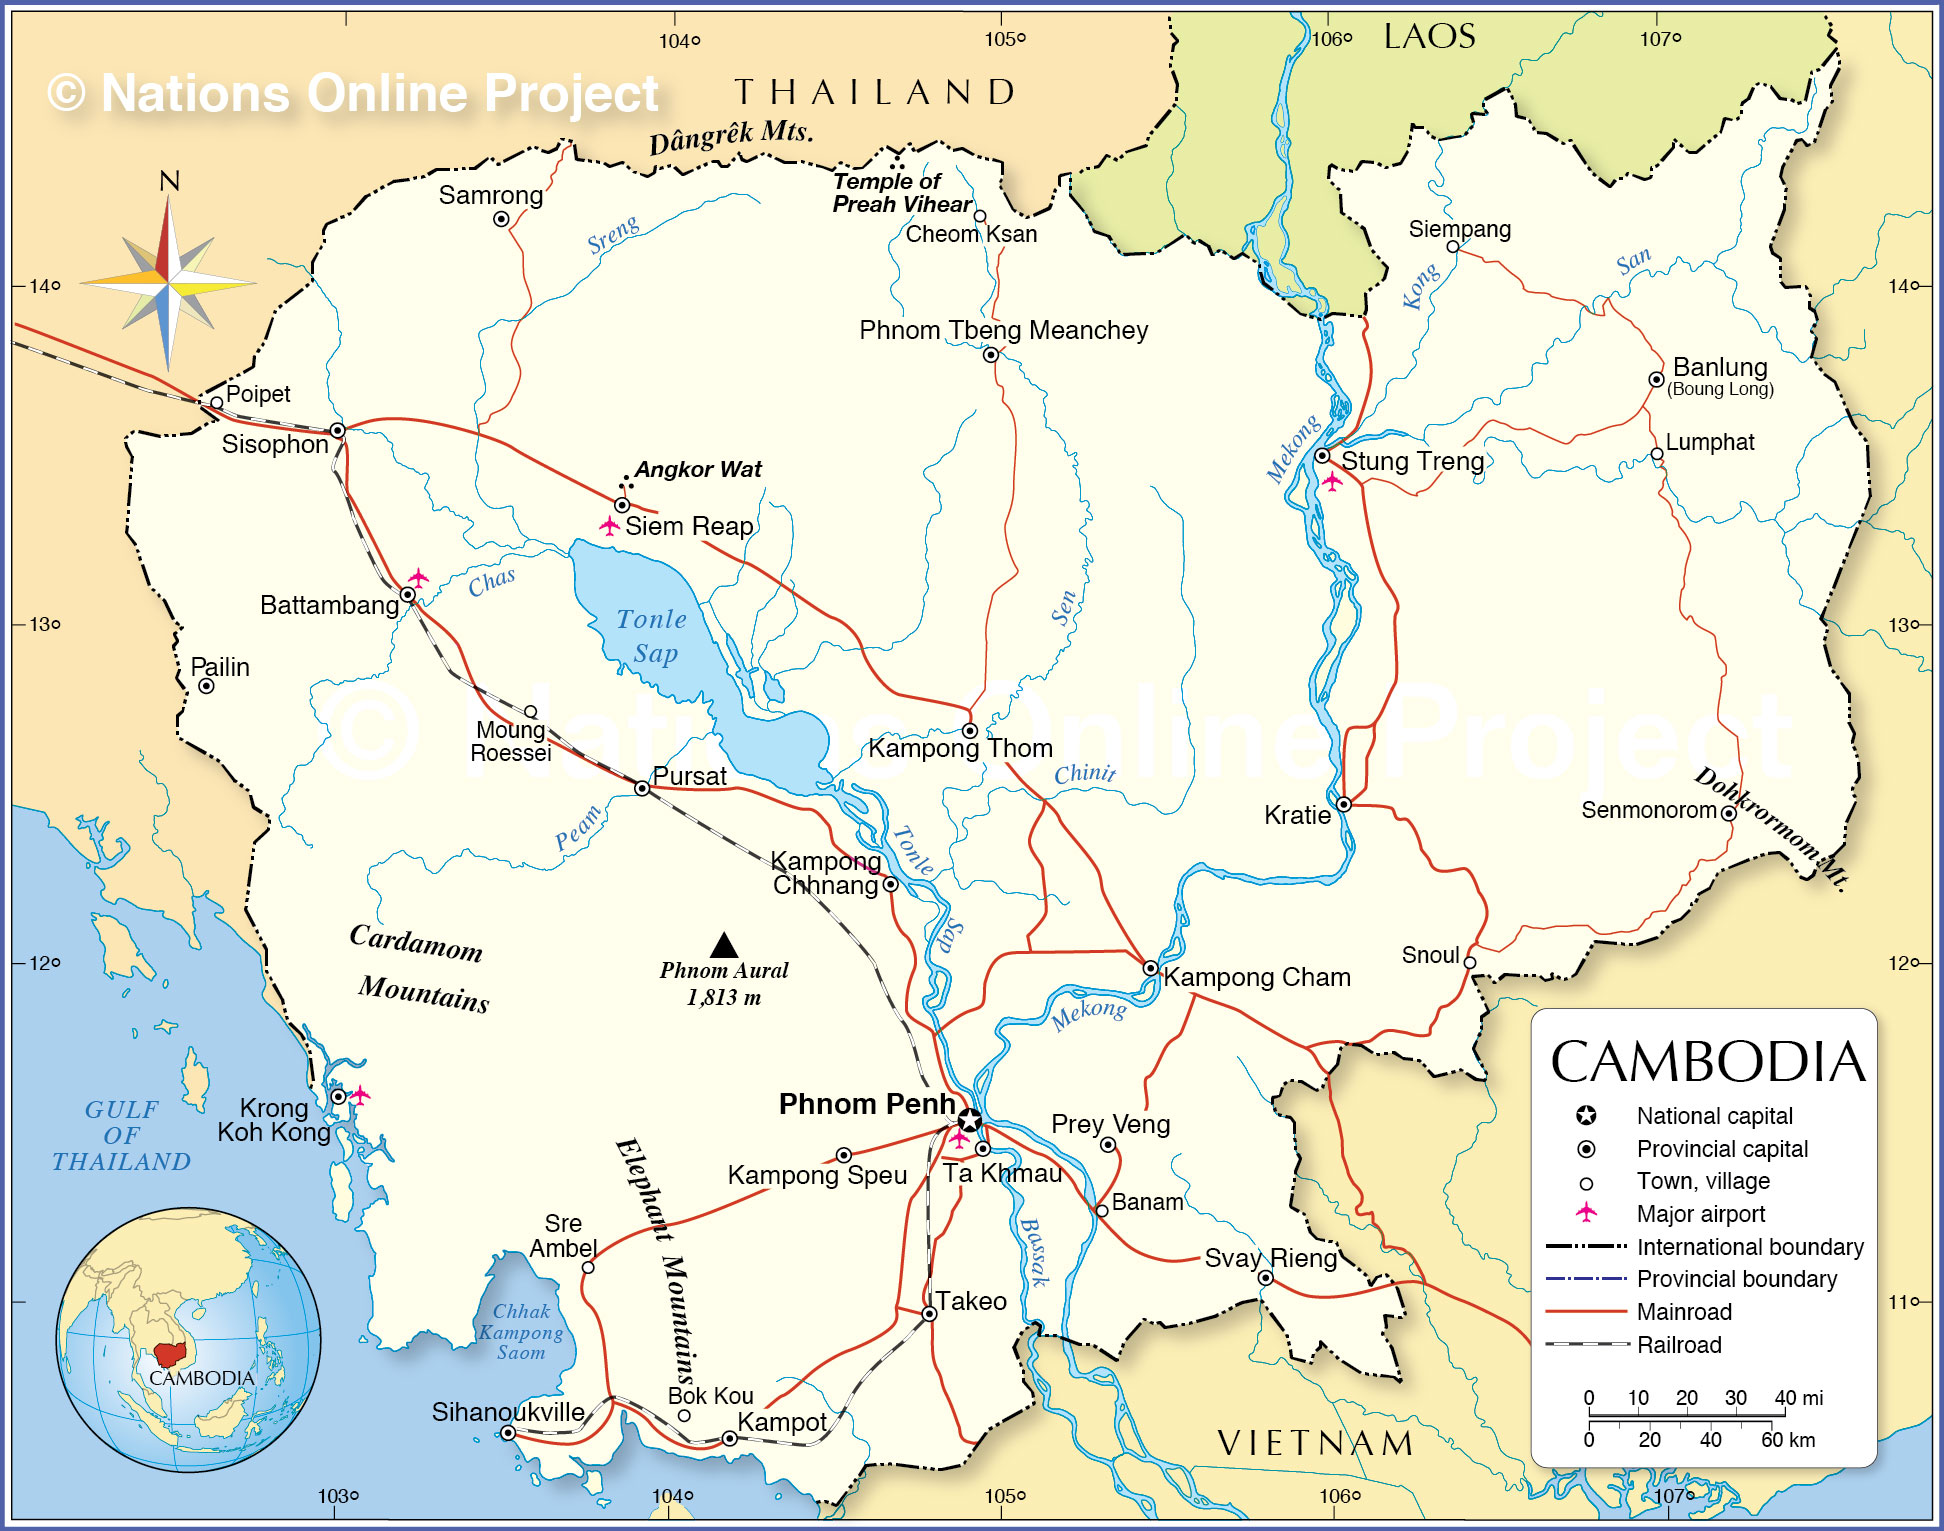 Political Map of Cambodia - Nations Online Project on europe map, qatar map, west indies map, korea map, africa map, china map, japan map, indochina map, pacific islands map, city map, da nang map, burma map, burundi map, chad map, martinique map, el salvador map, benin map, bhutan map, east timor map, bulgaria map, phillipines map, congo map, syria map, eritrea map, bangladesh map, cameroon map,